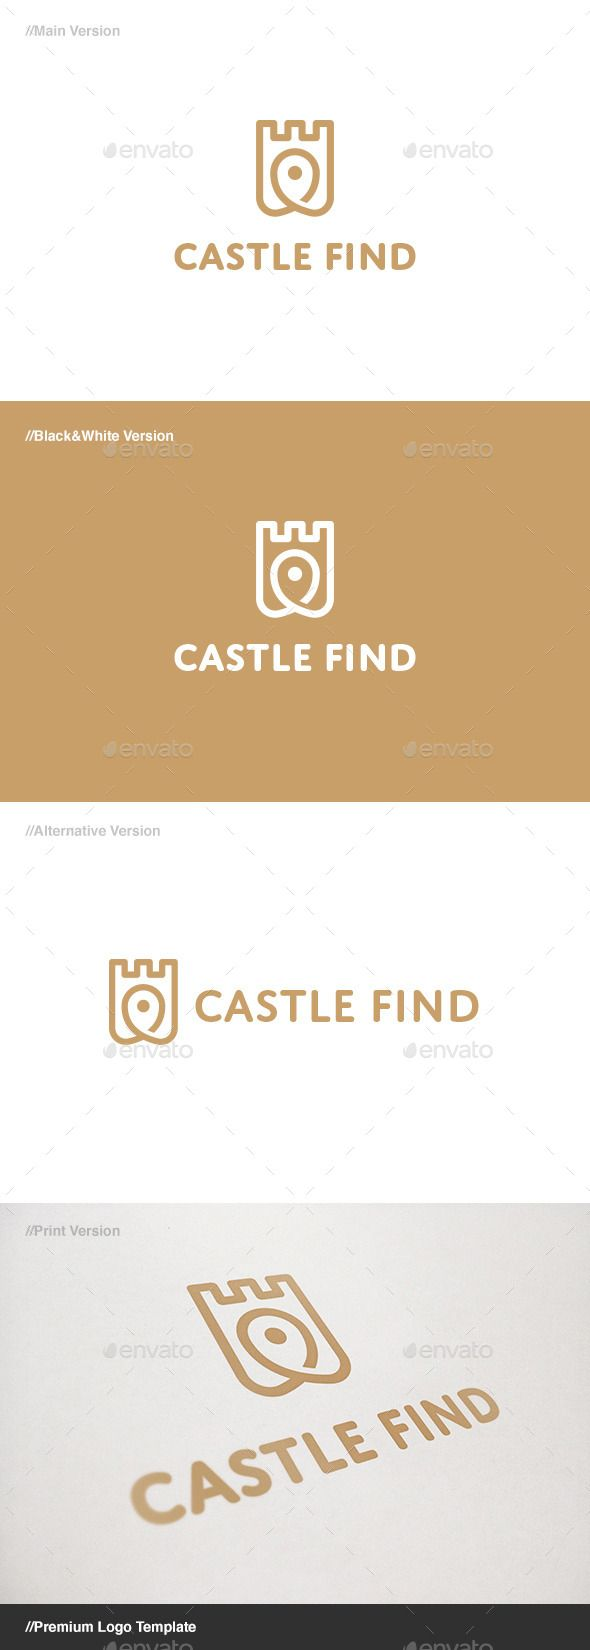 Castle Find: is a logo that can be used in real estate companies, tourist guides, GPS stores, among other uses. Its design is very